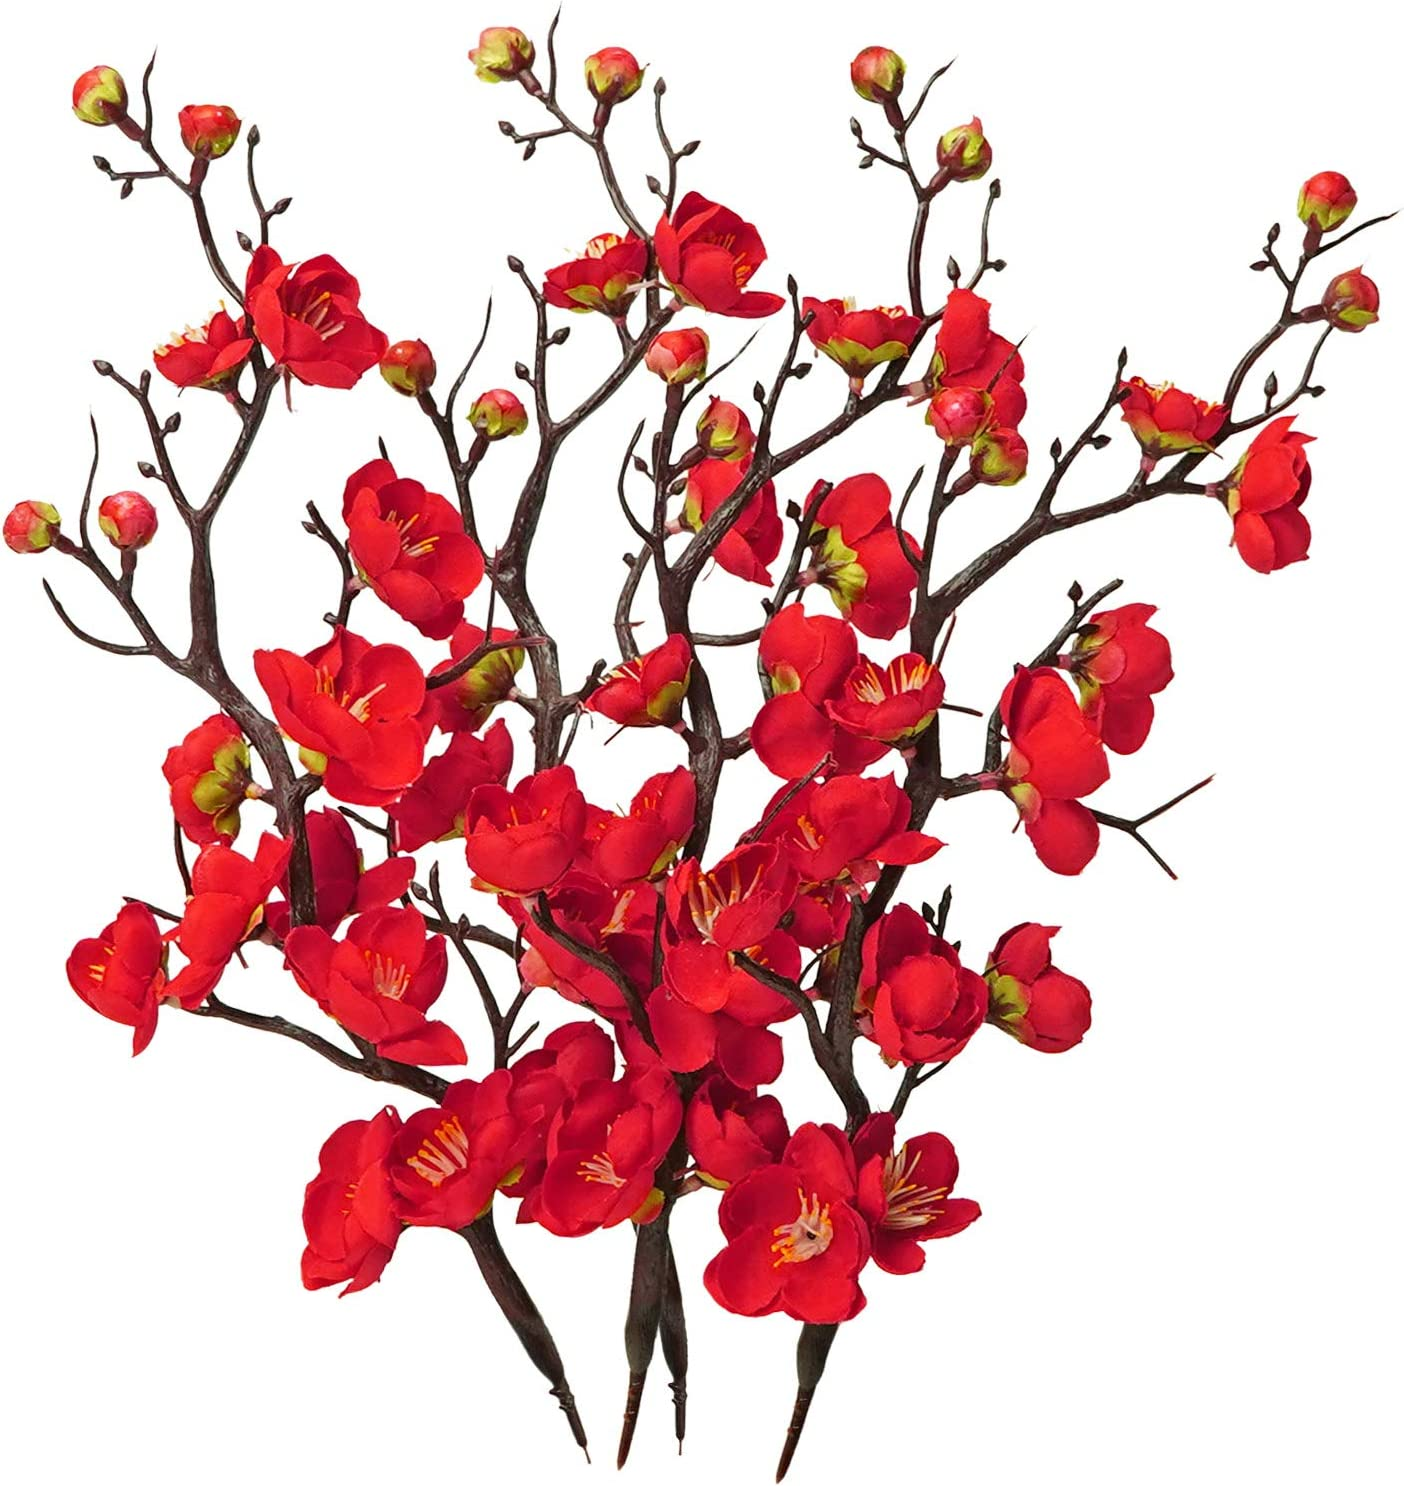 LSME Artificial Silk Plum Blossom Branch Real Touch for Table Wedding Bouquet Home Decor 4 Branches Red